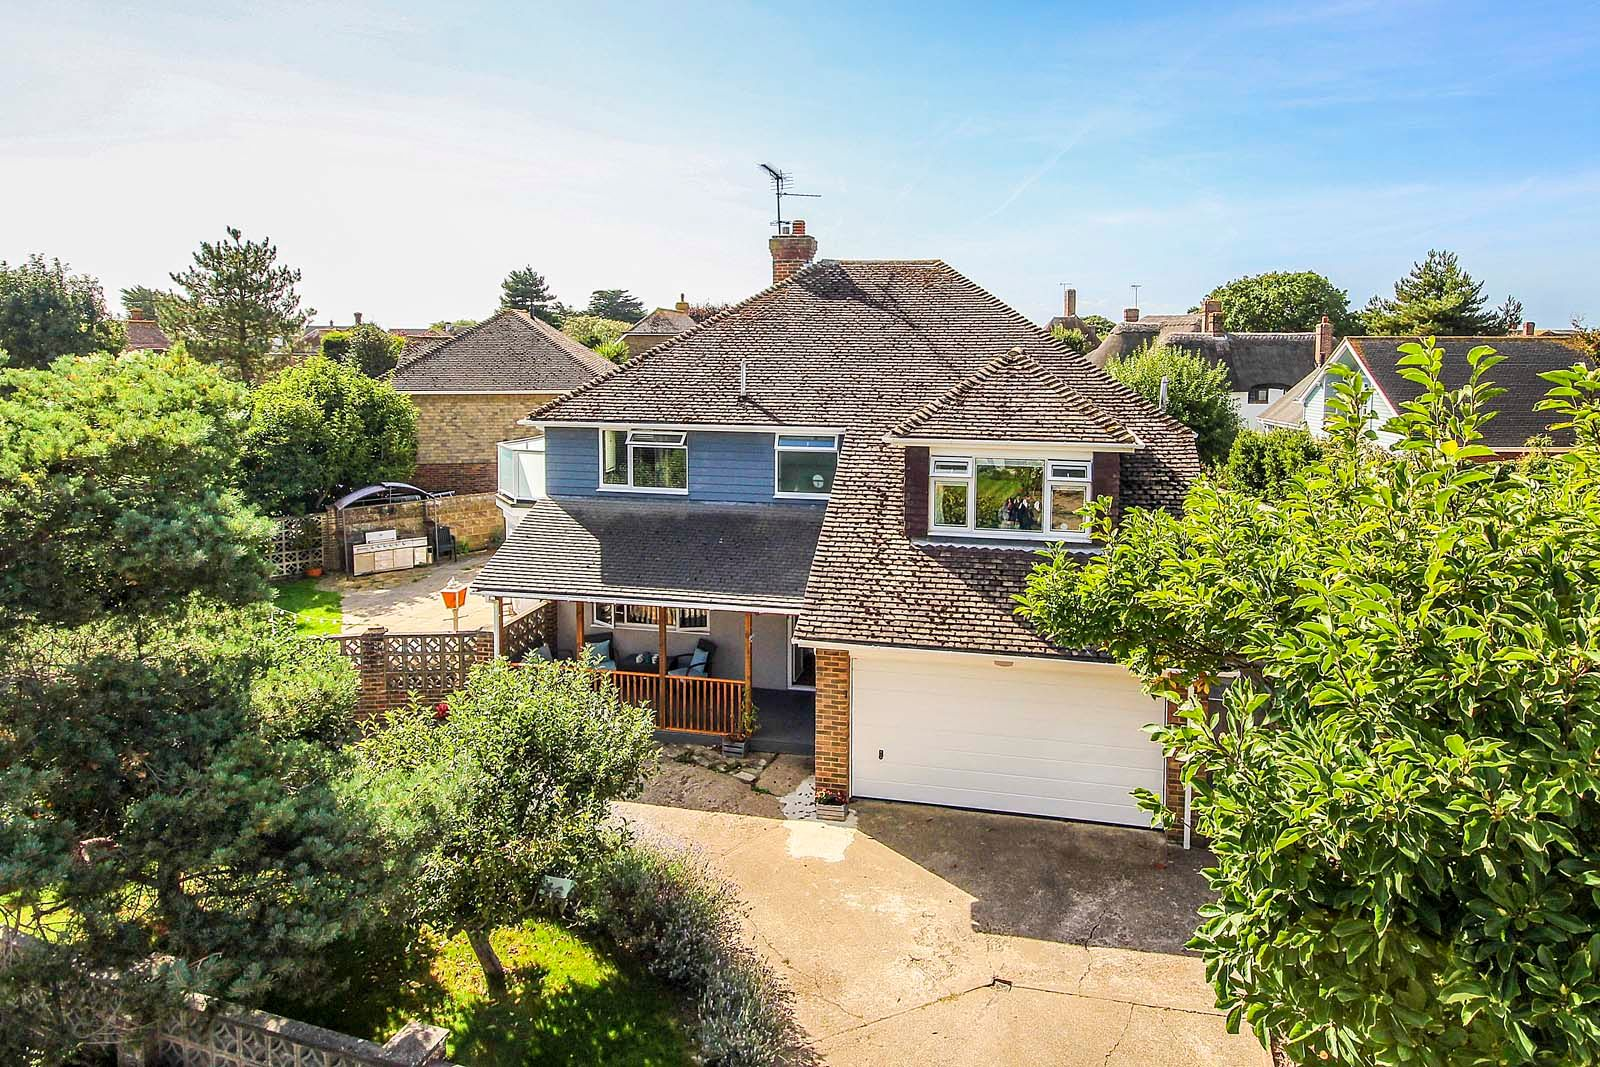 4 bed House for sale in Rustington - Elevated front (Property Image 0)